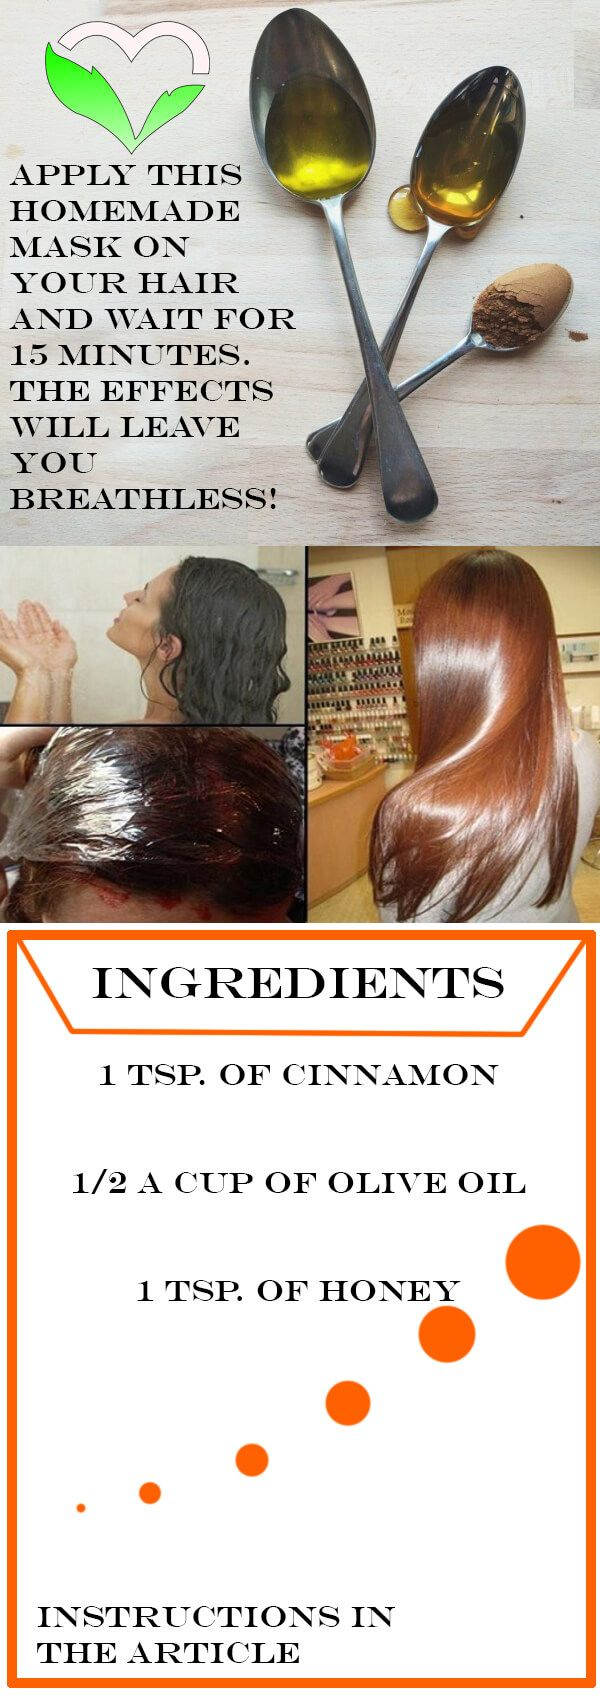 Our hair is one of the most important aesthetics features we have on our body, which is why most women tend to do everything they can to make it look beautiful, strong and shiny. However, hair care can often seem delicate as our hair is being damaged by everyday factors and routines, making it sometimesContinue Reading